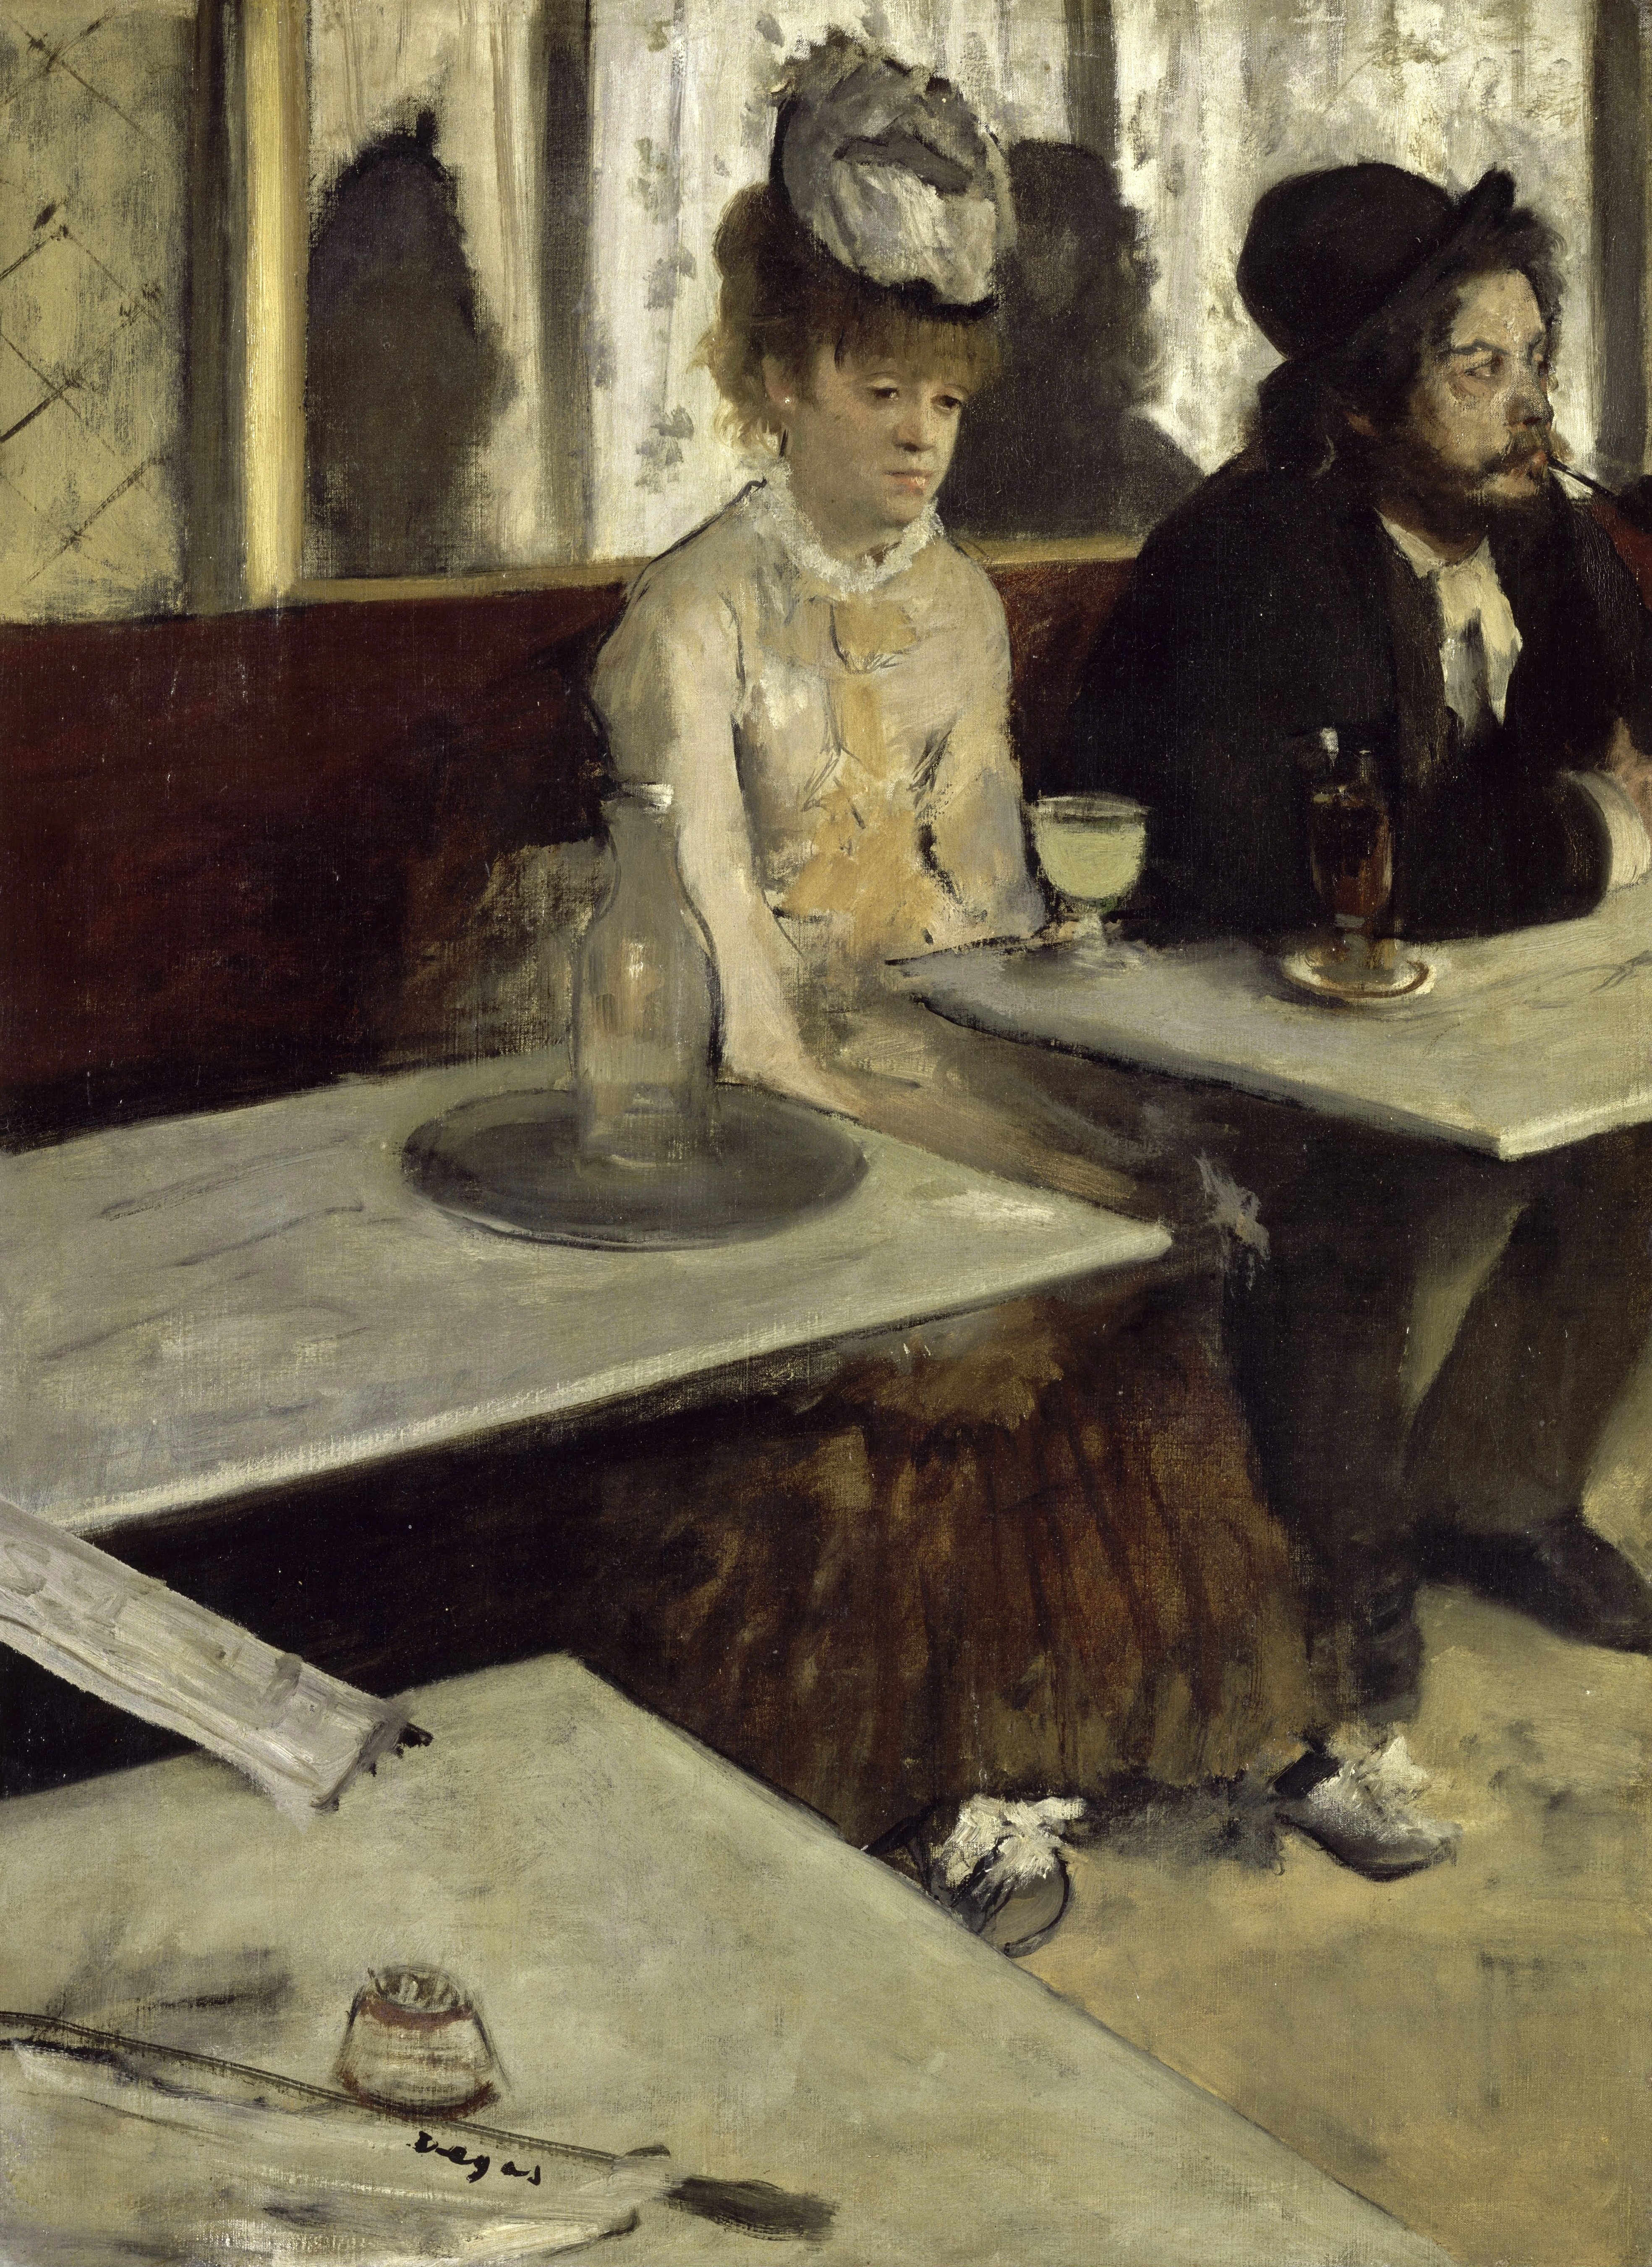 Edgar_Degas_-_In_a_Café_-_Google_Art_Project_2.jpg